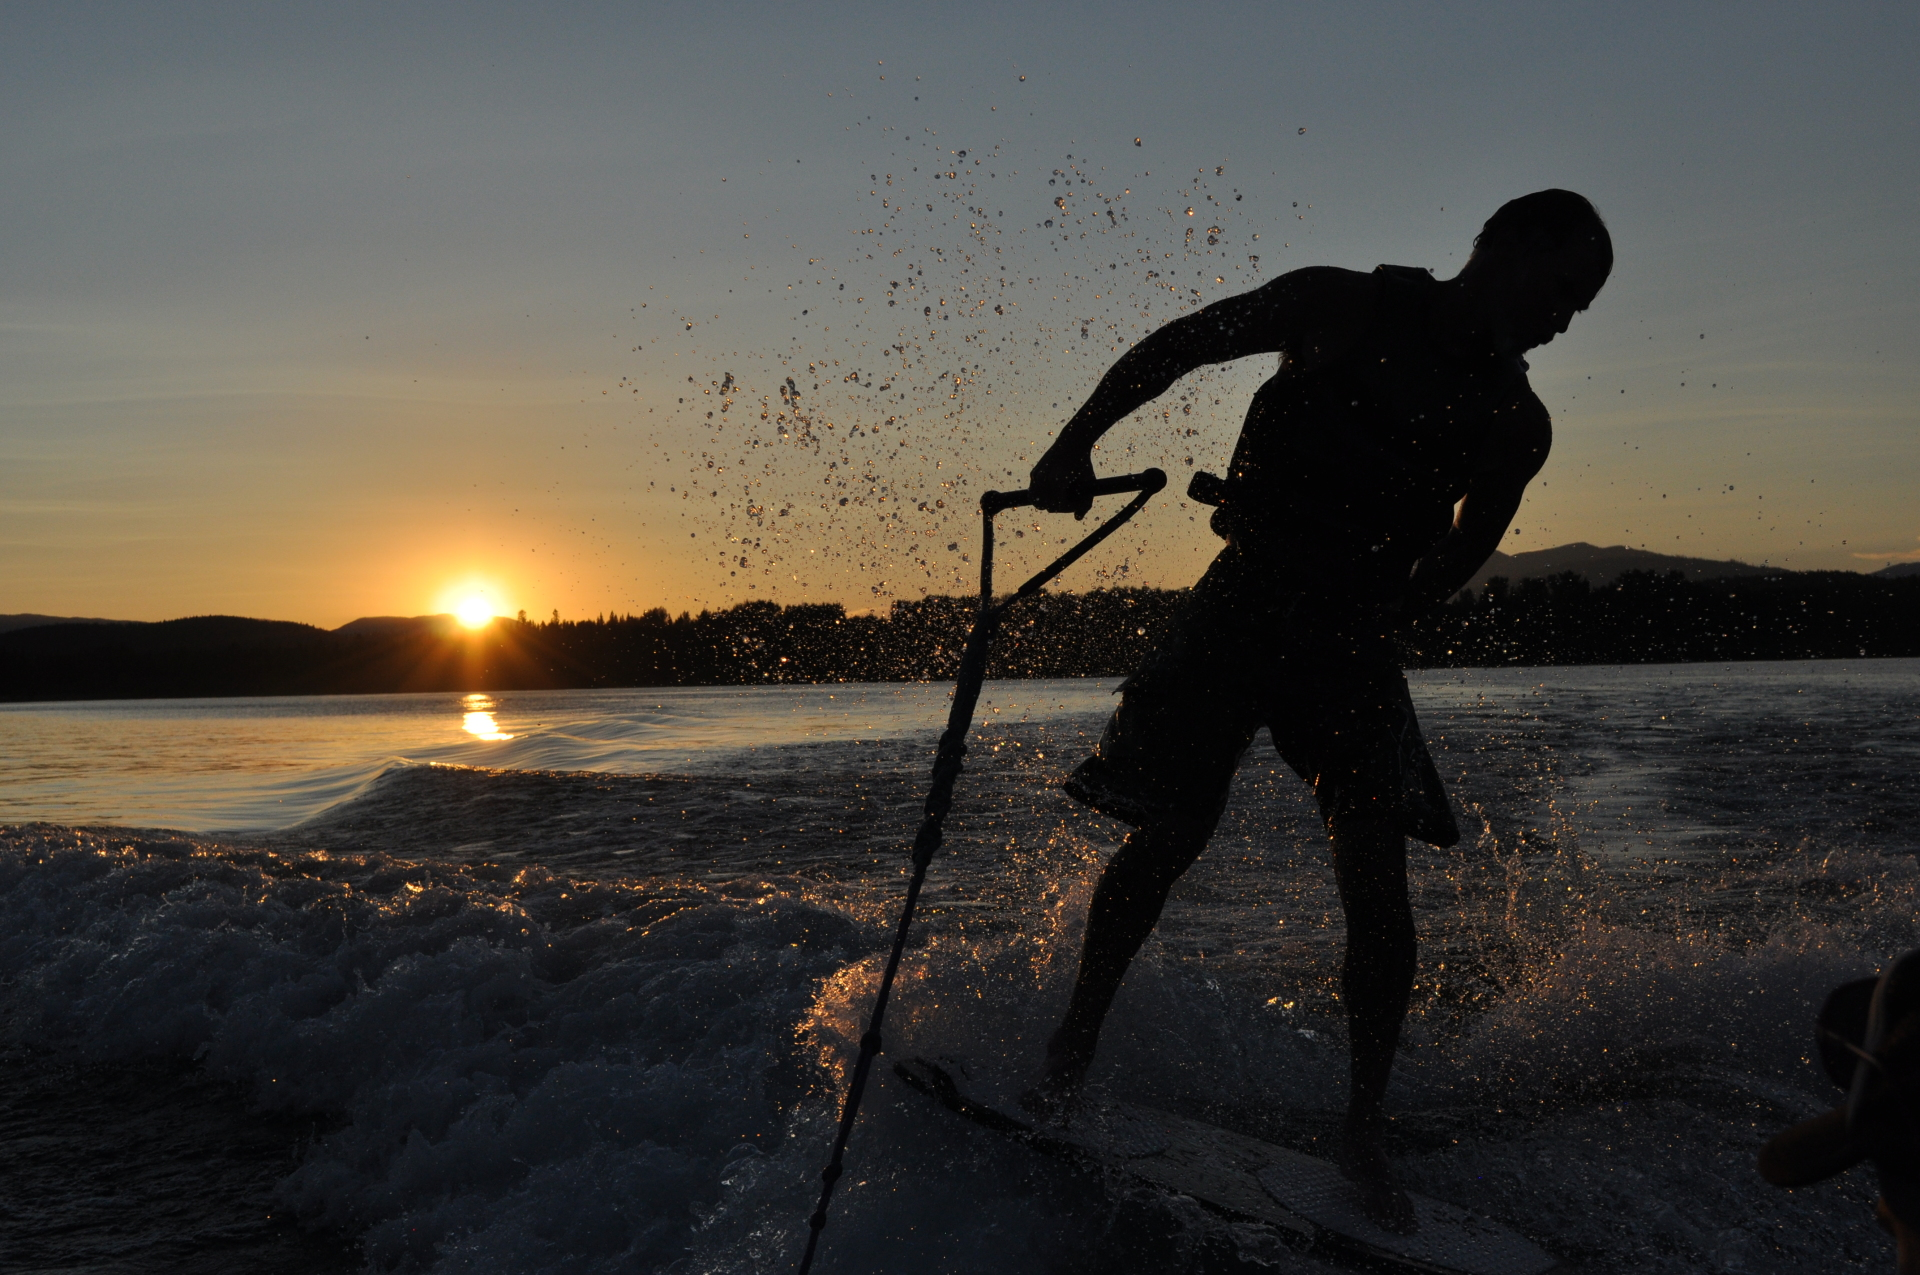 Sunsets and water skiing on Whitefish Lake